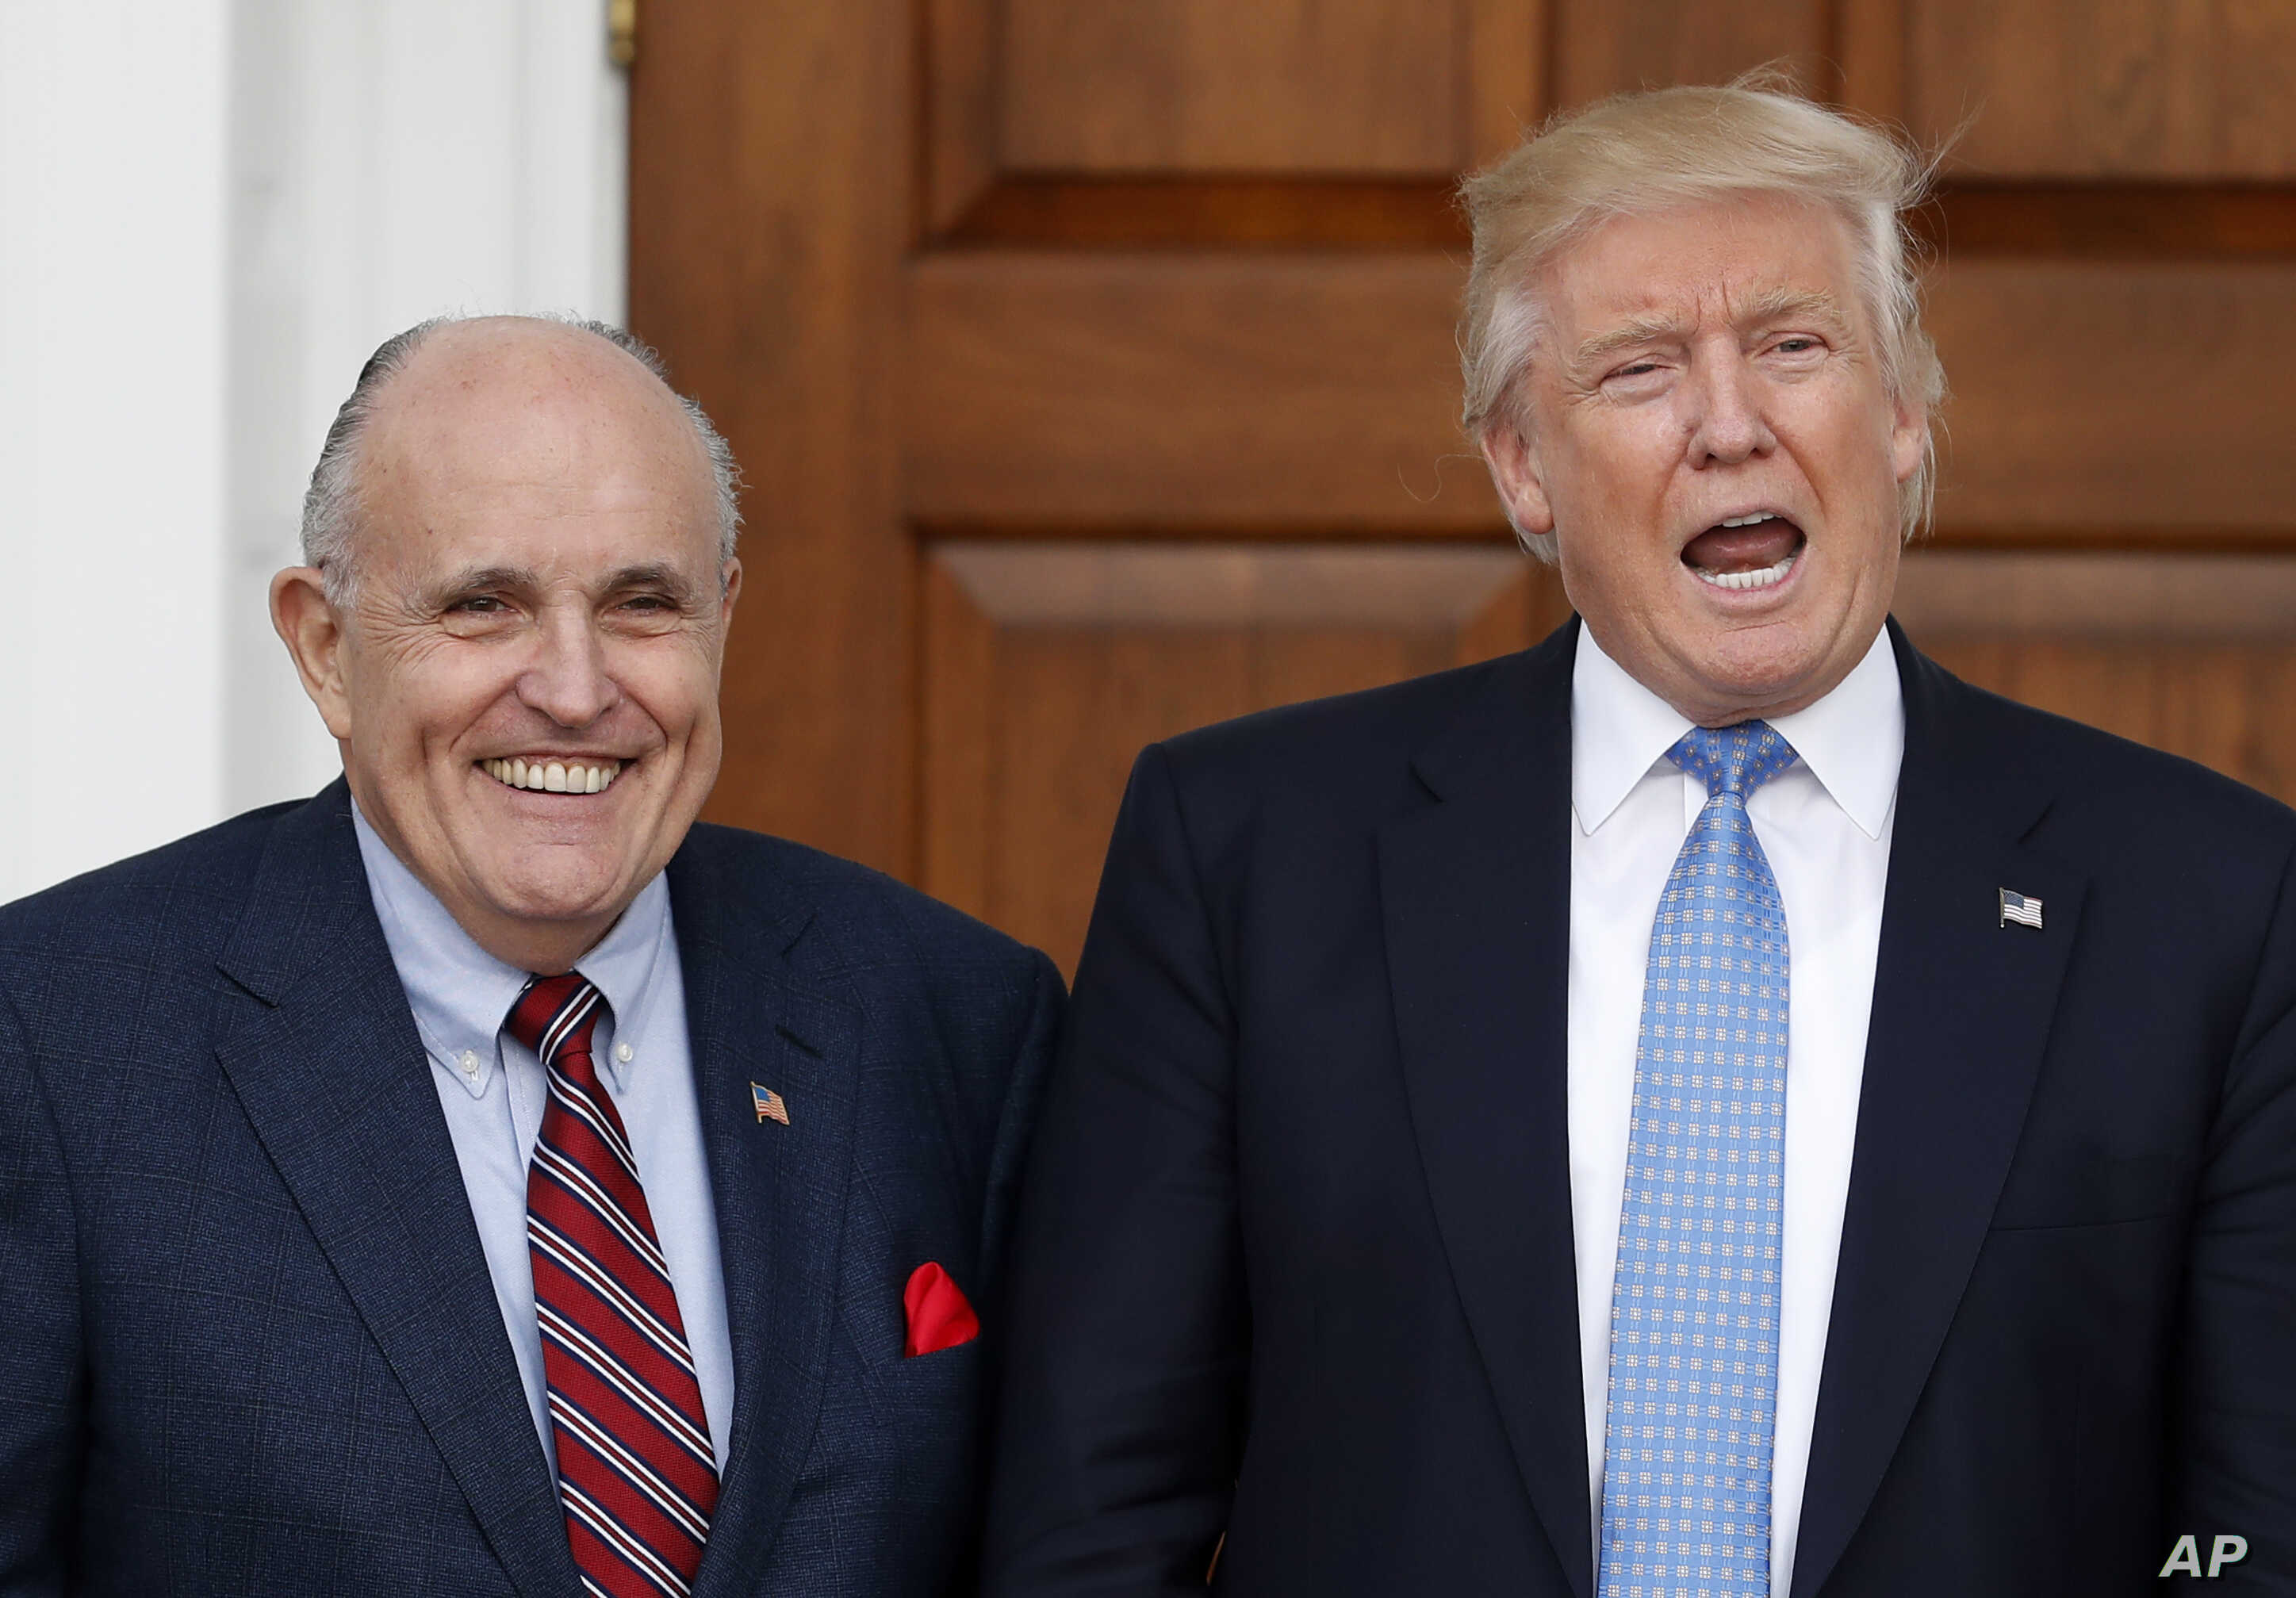 Image result for Does Rudy Giuliani Have Security Clearance?